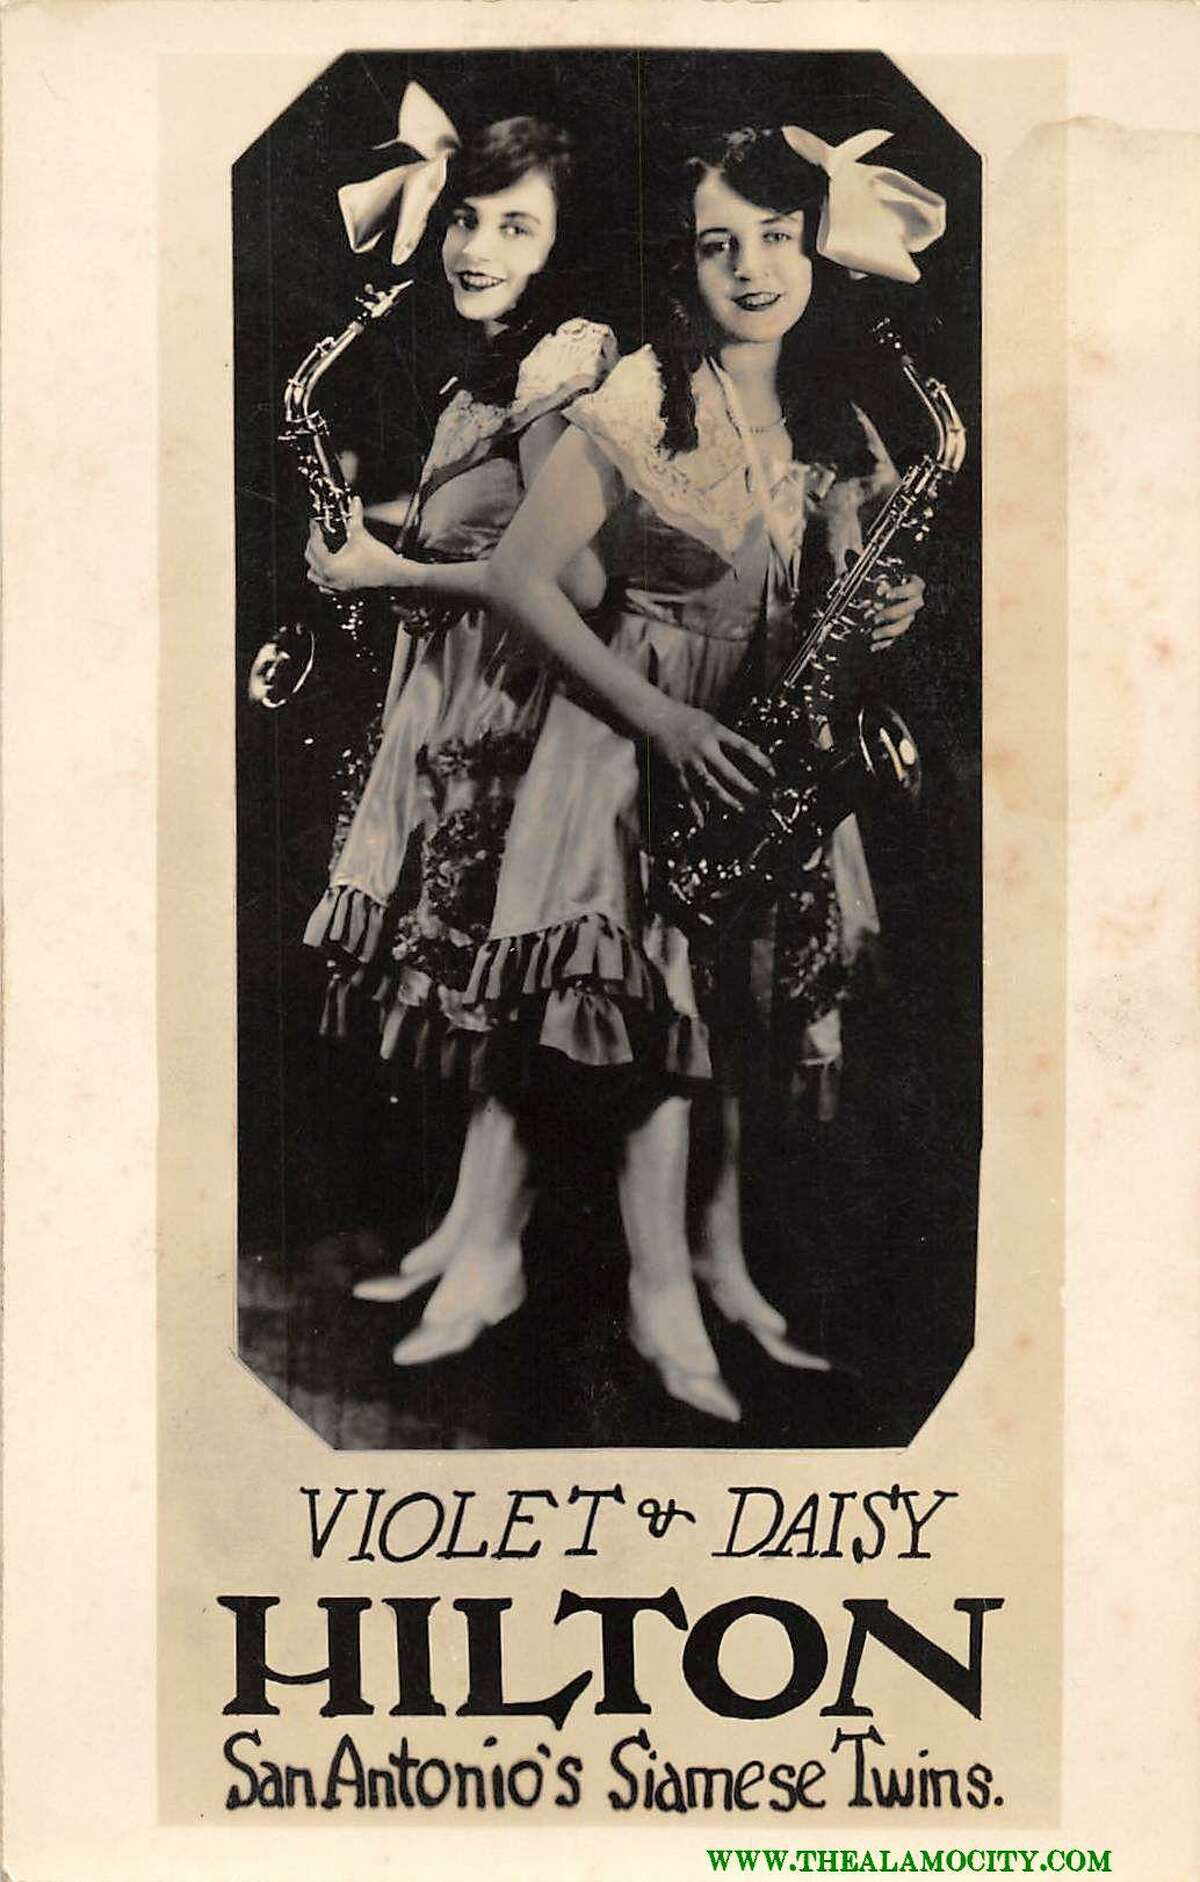 Joseph Cooper's vintage San Antonio postcards collection includes two cards featuring conjoined twins Violet and Daisy Hilton, who in the 1920s were billed as the San Antonio Siamese Twins. This particular postcard is autographed by the twins.